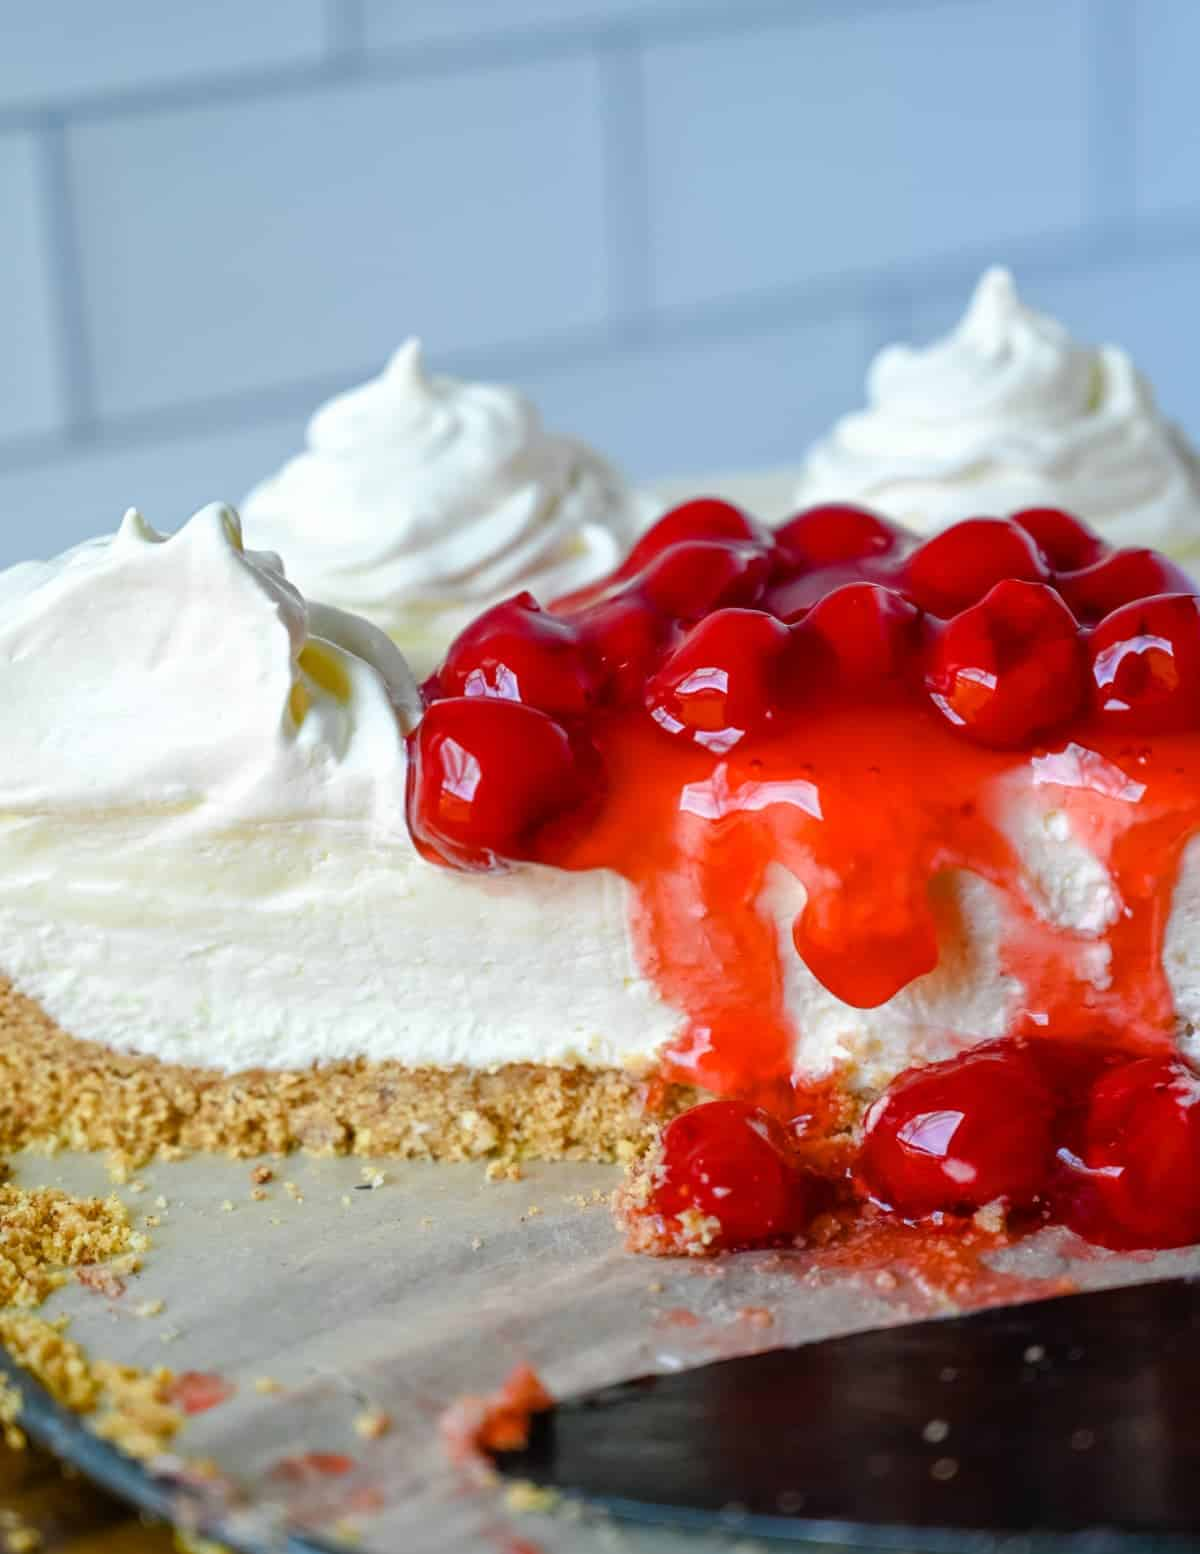 No bake cheese cake cut in half with cherries on top.